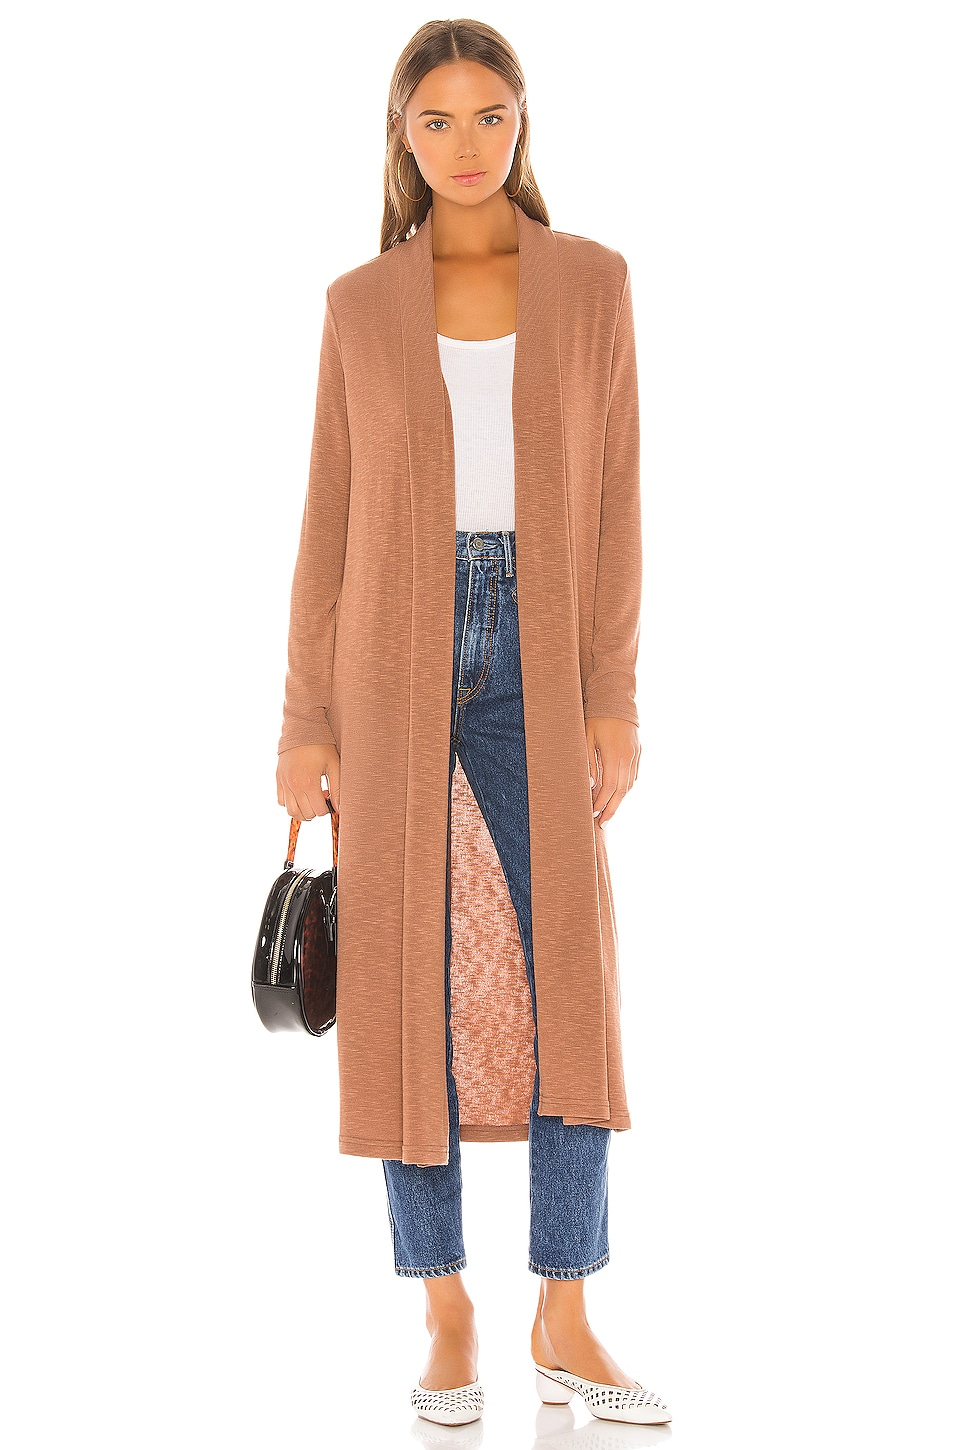 Michael Stars Candice Long Cardigan in Sequoia